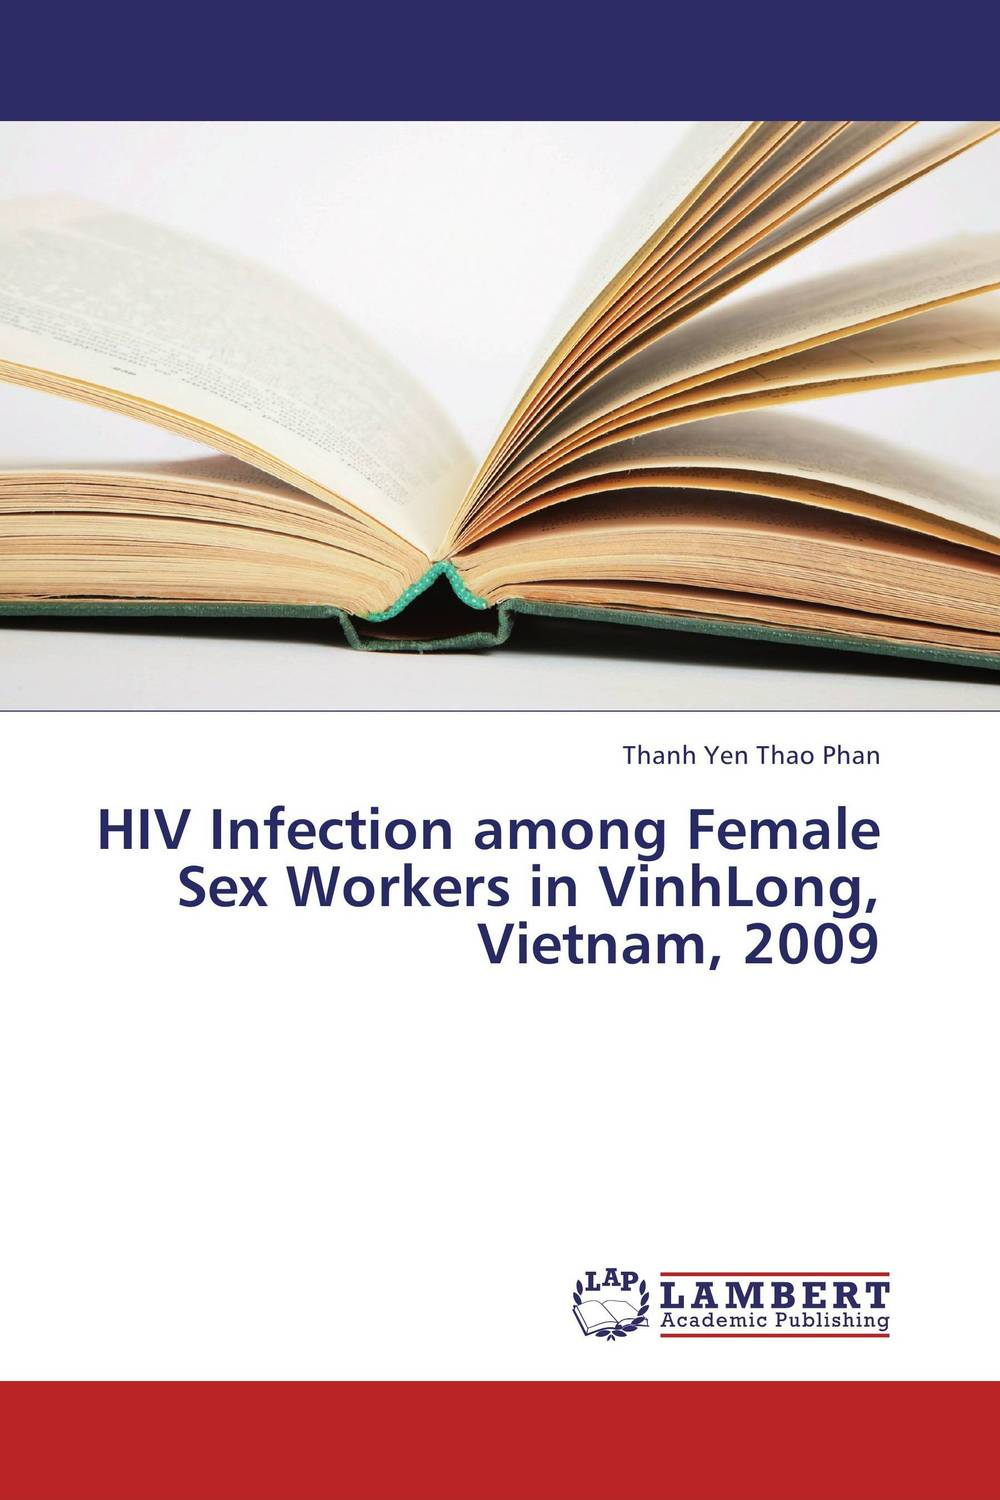 HIV Infection among Female Sex Workers in VinhLong, Vietnam, 2009 koning jan de high returns from low risk